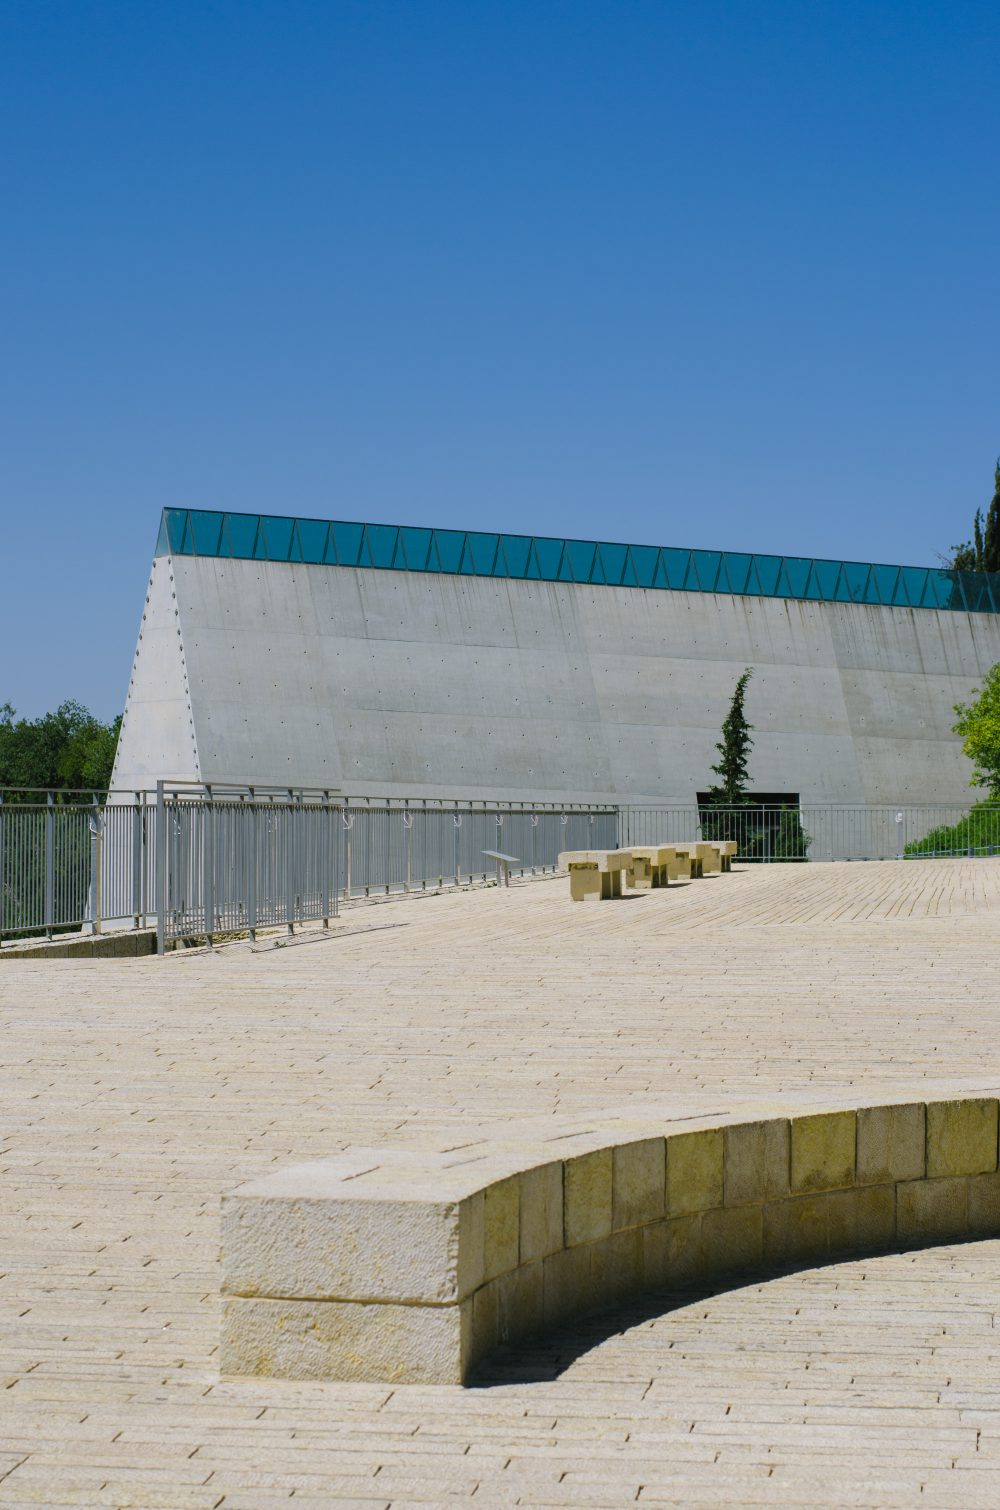 Another perspective of the main museum